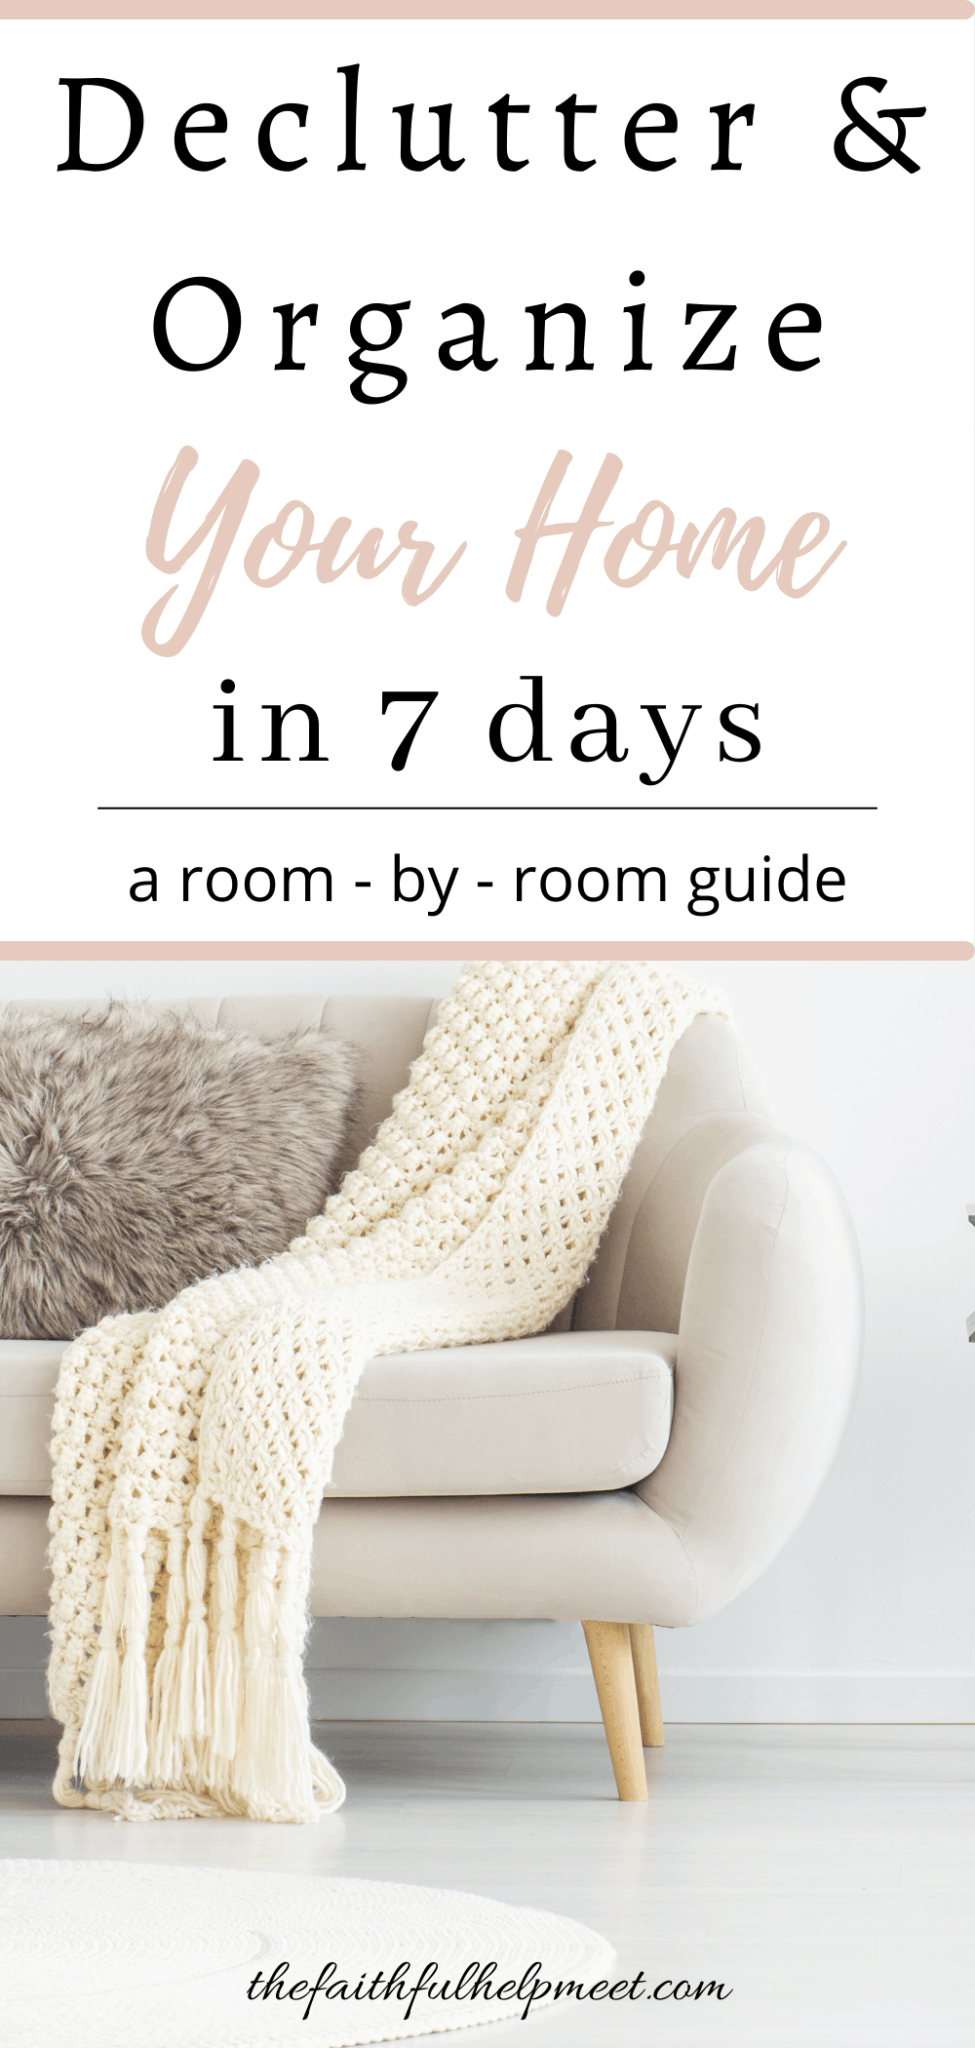 declutter and organize in 7 days